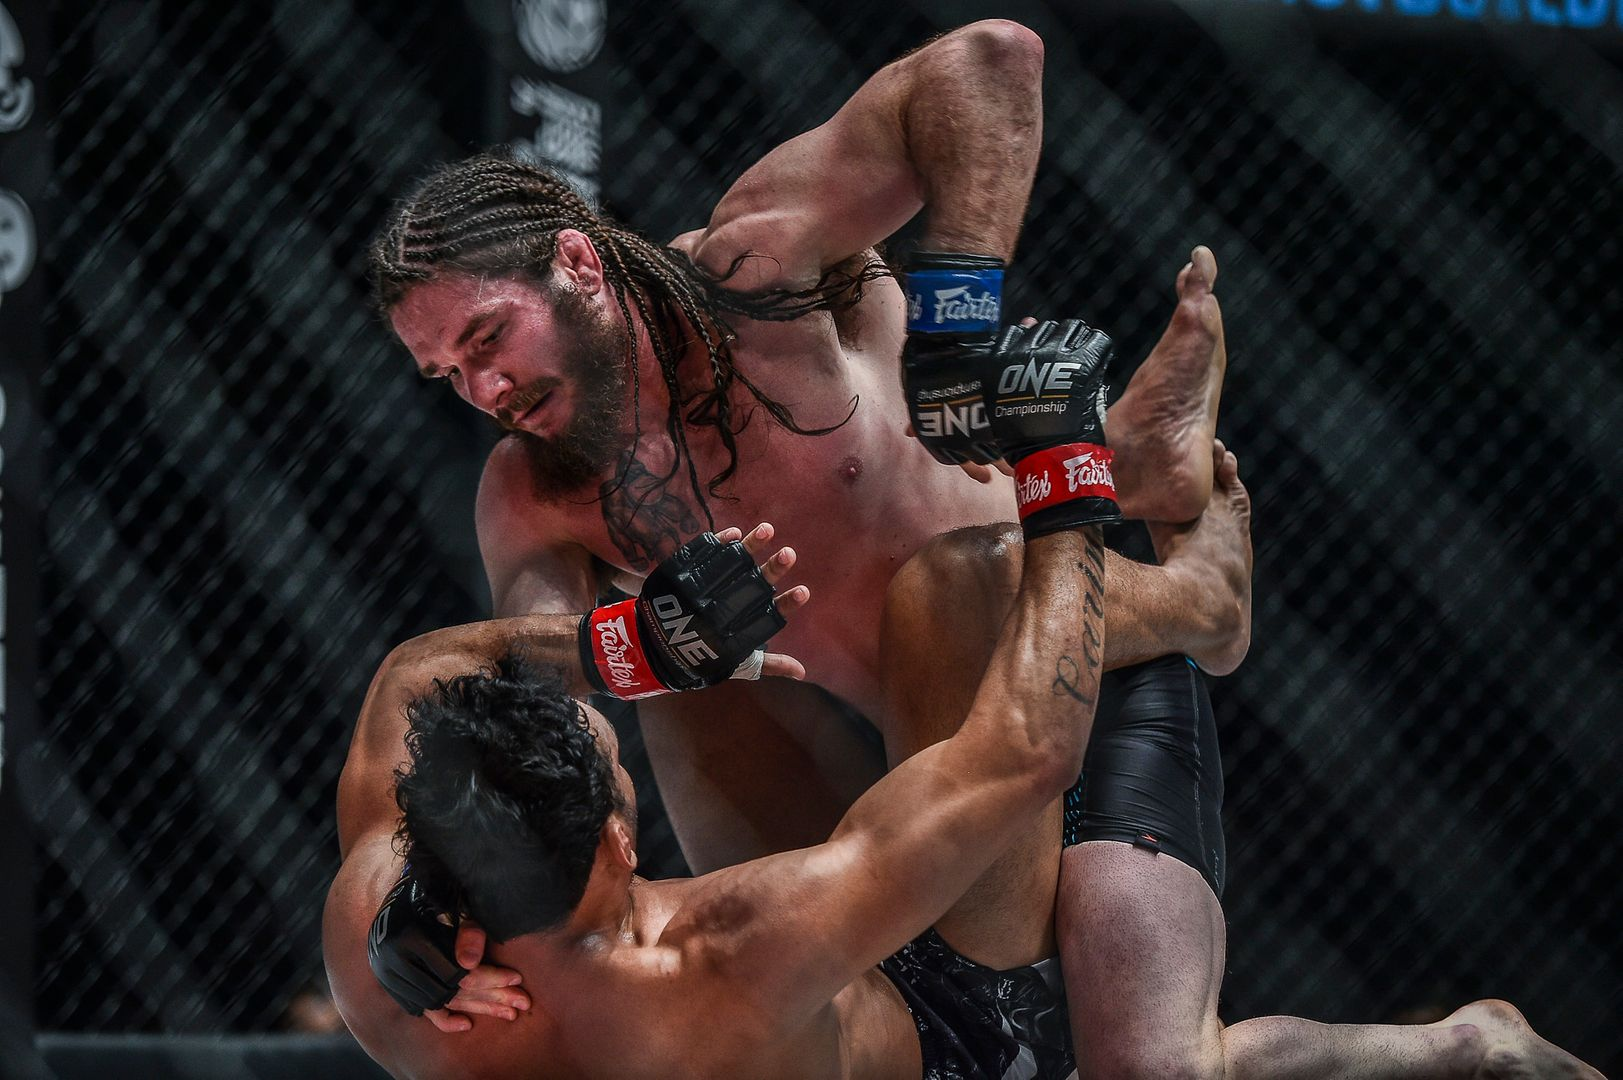 James Nakashima dishes out some ground and pound at ONE: ROOTS OF HONOR